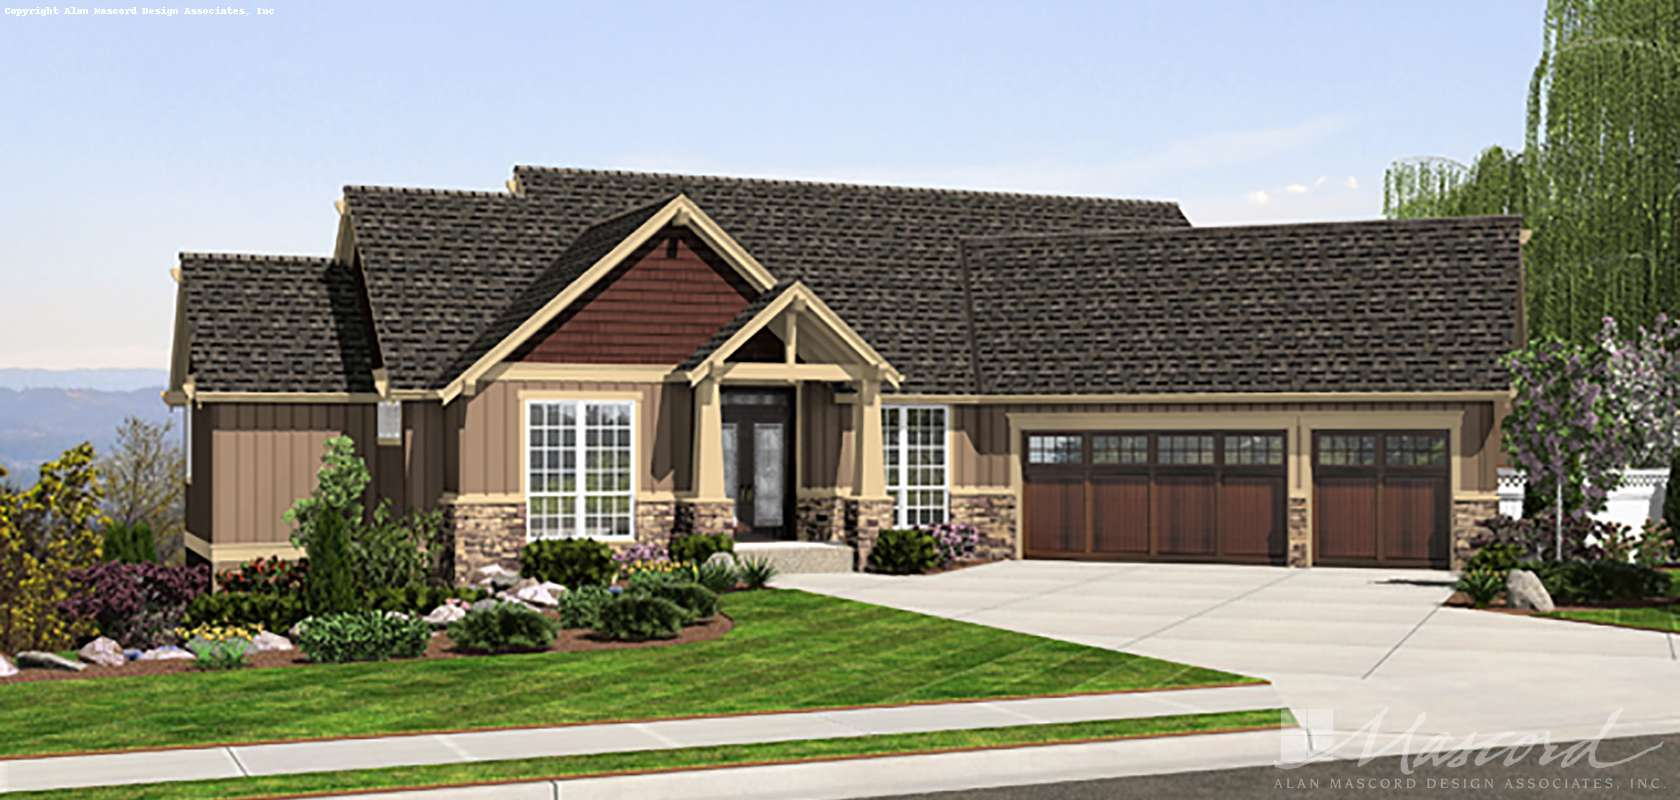 Mascord House Plan 1323: The Paysholme